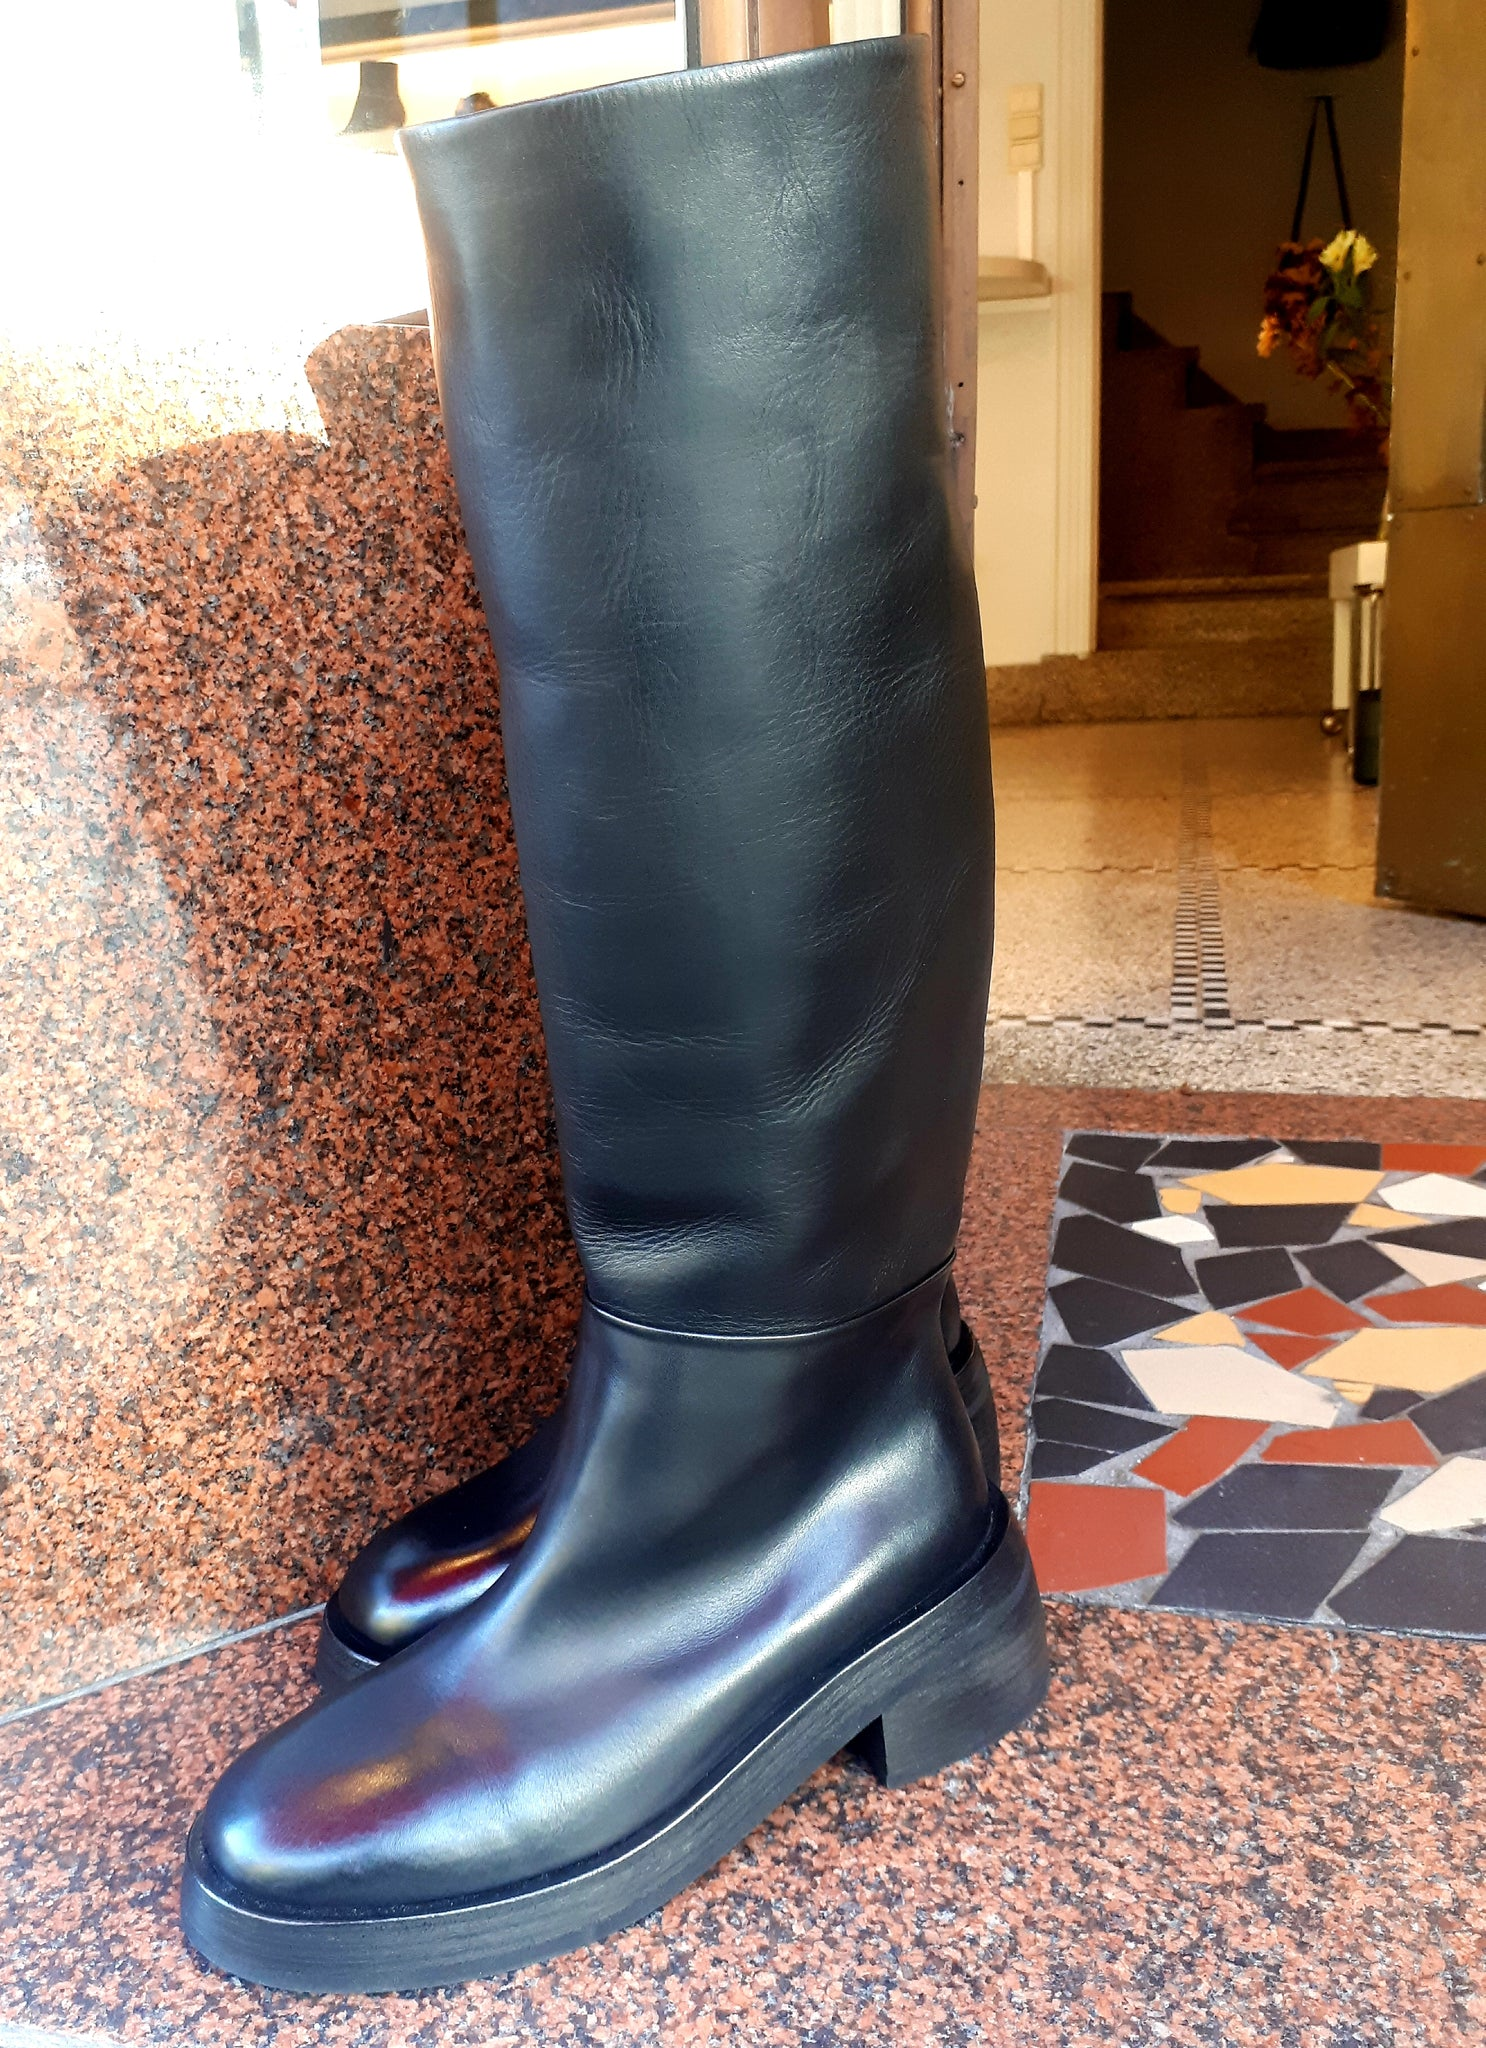 Knee high boots in black leather